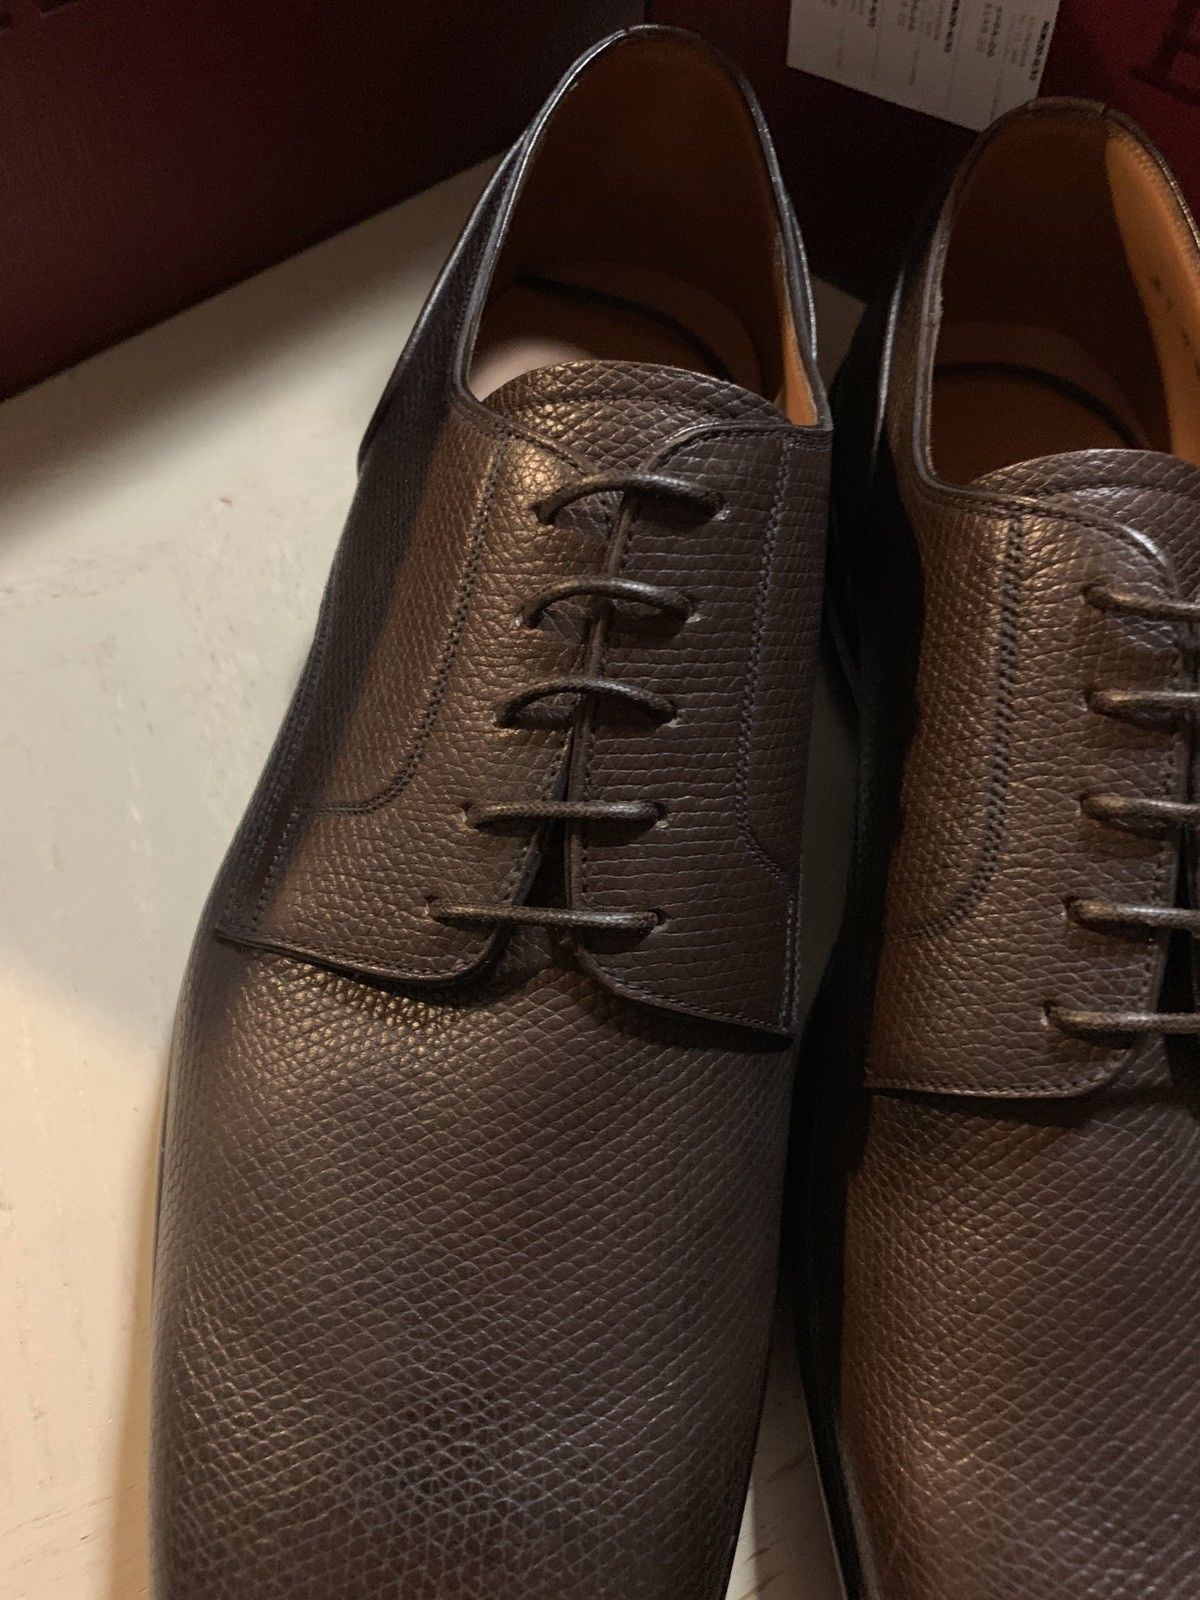 New $495 Bally Men Mincio Leather Shoes Brown 11 US ( 44 Eu ) Switzerland